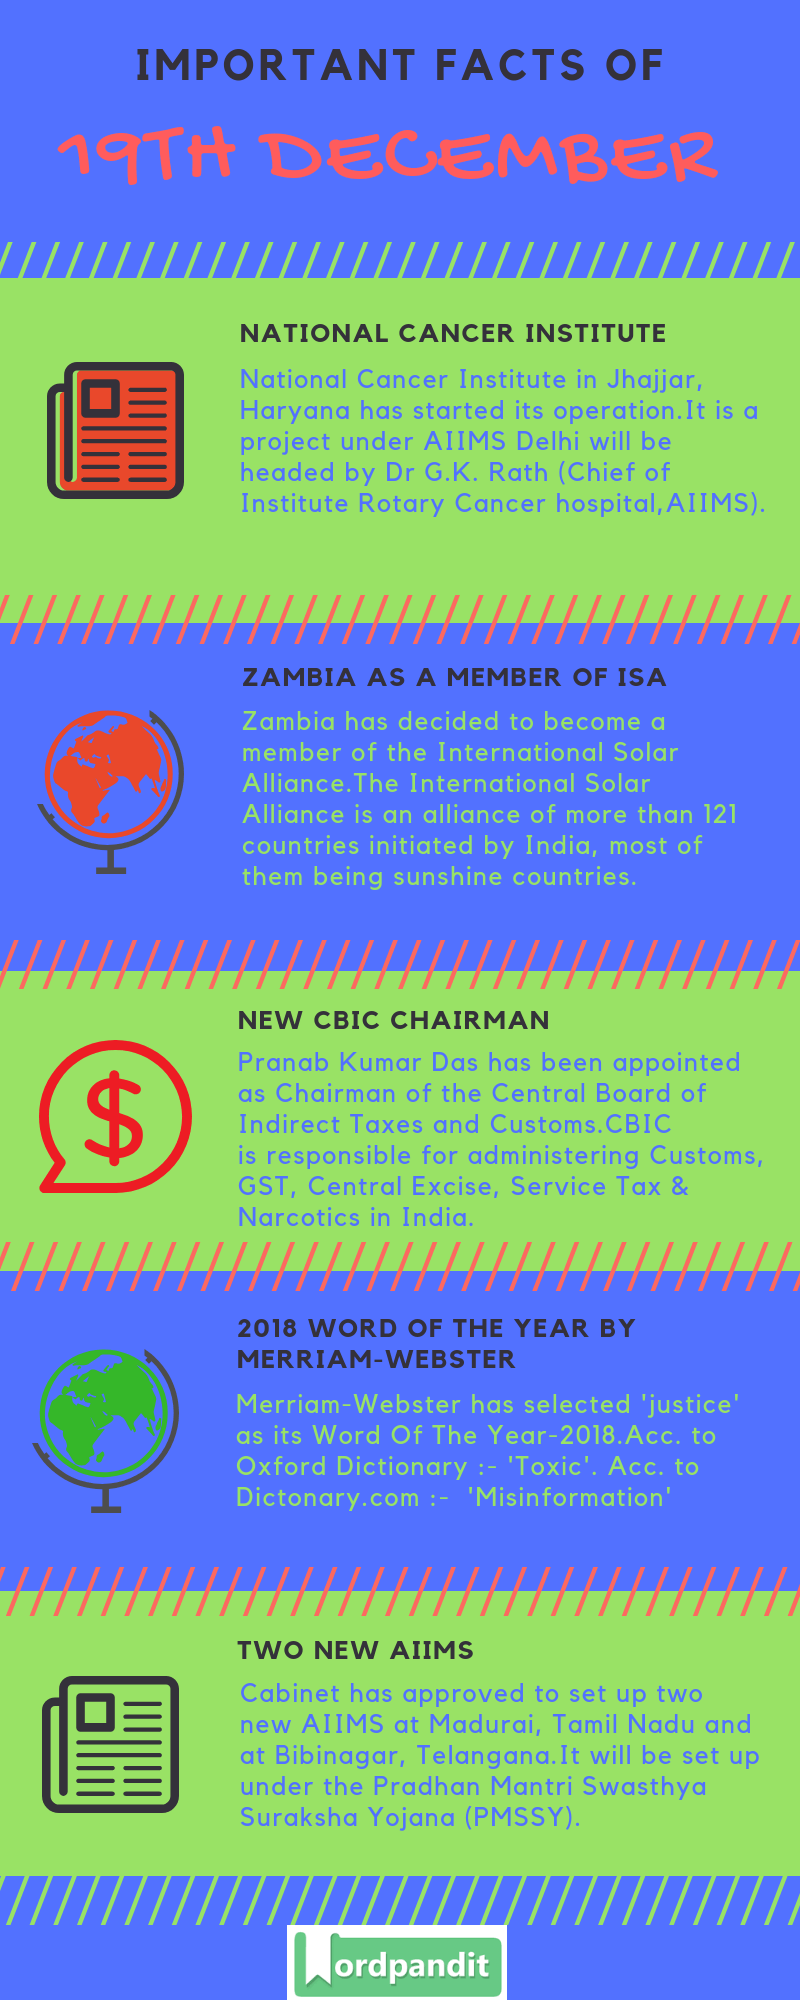 Daily Current Affairs 19 December 2018 Current Affairs Quiz 19 December 2018 Current Affairs Infographic